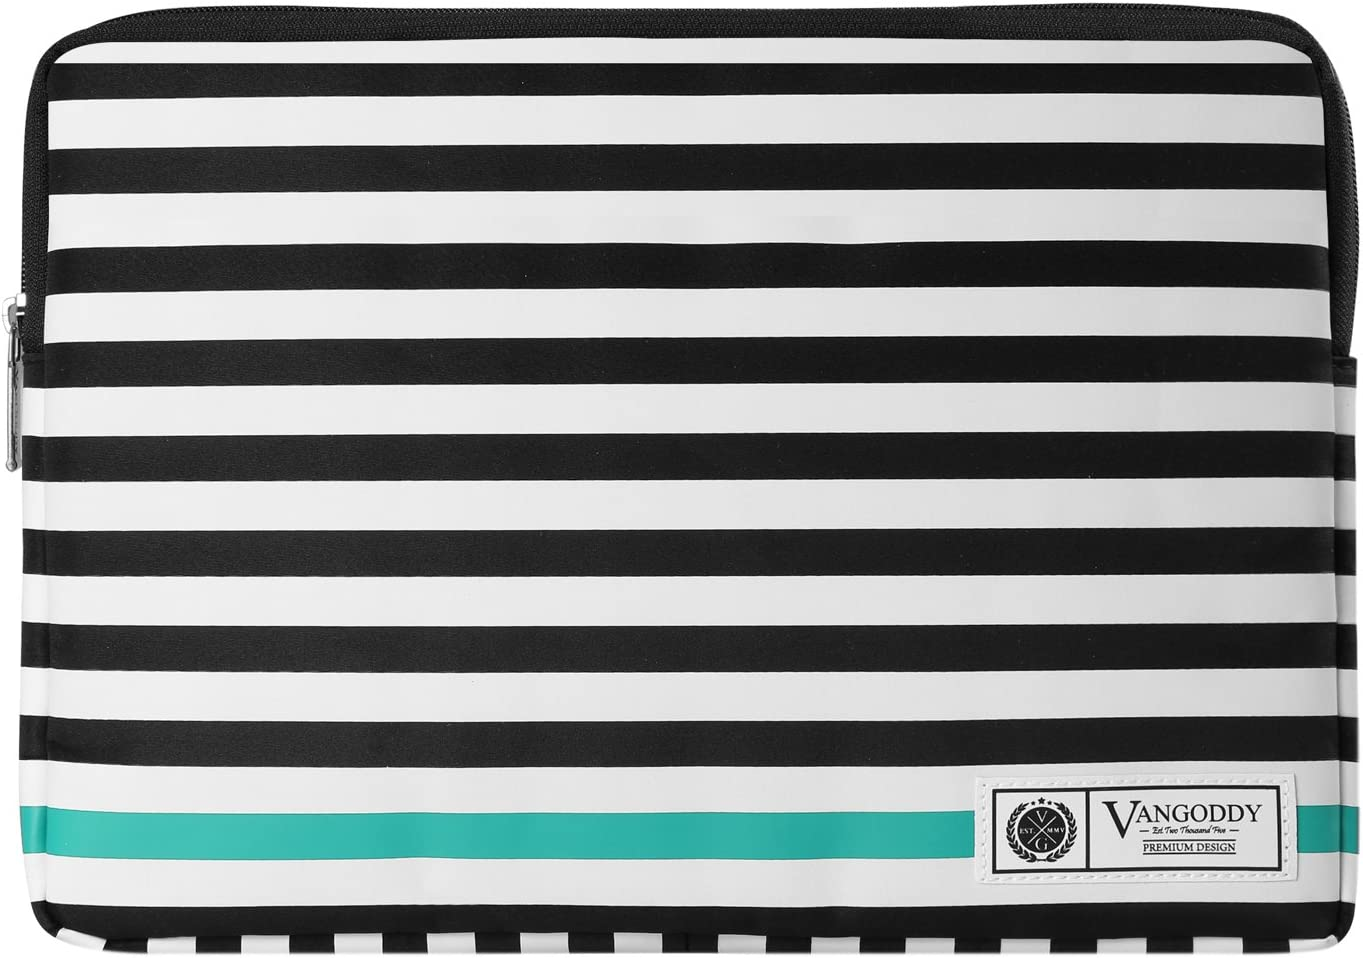 17.3 Inch Laptop Sleeve for Dell Inspiron 3785 3793 3797 7706 7790, Precision 5750 7750, XPS 9700